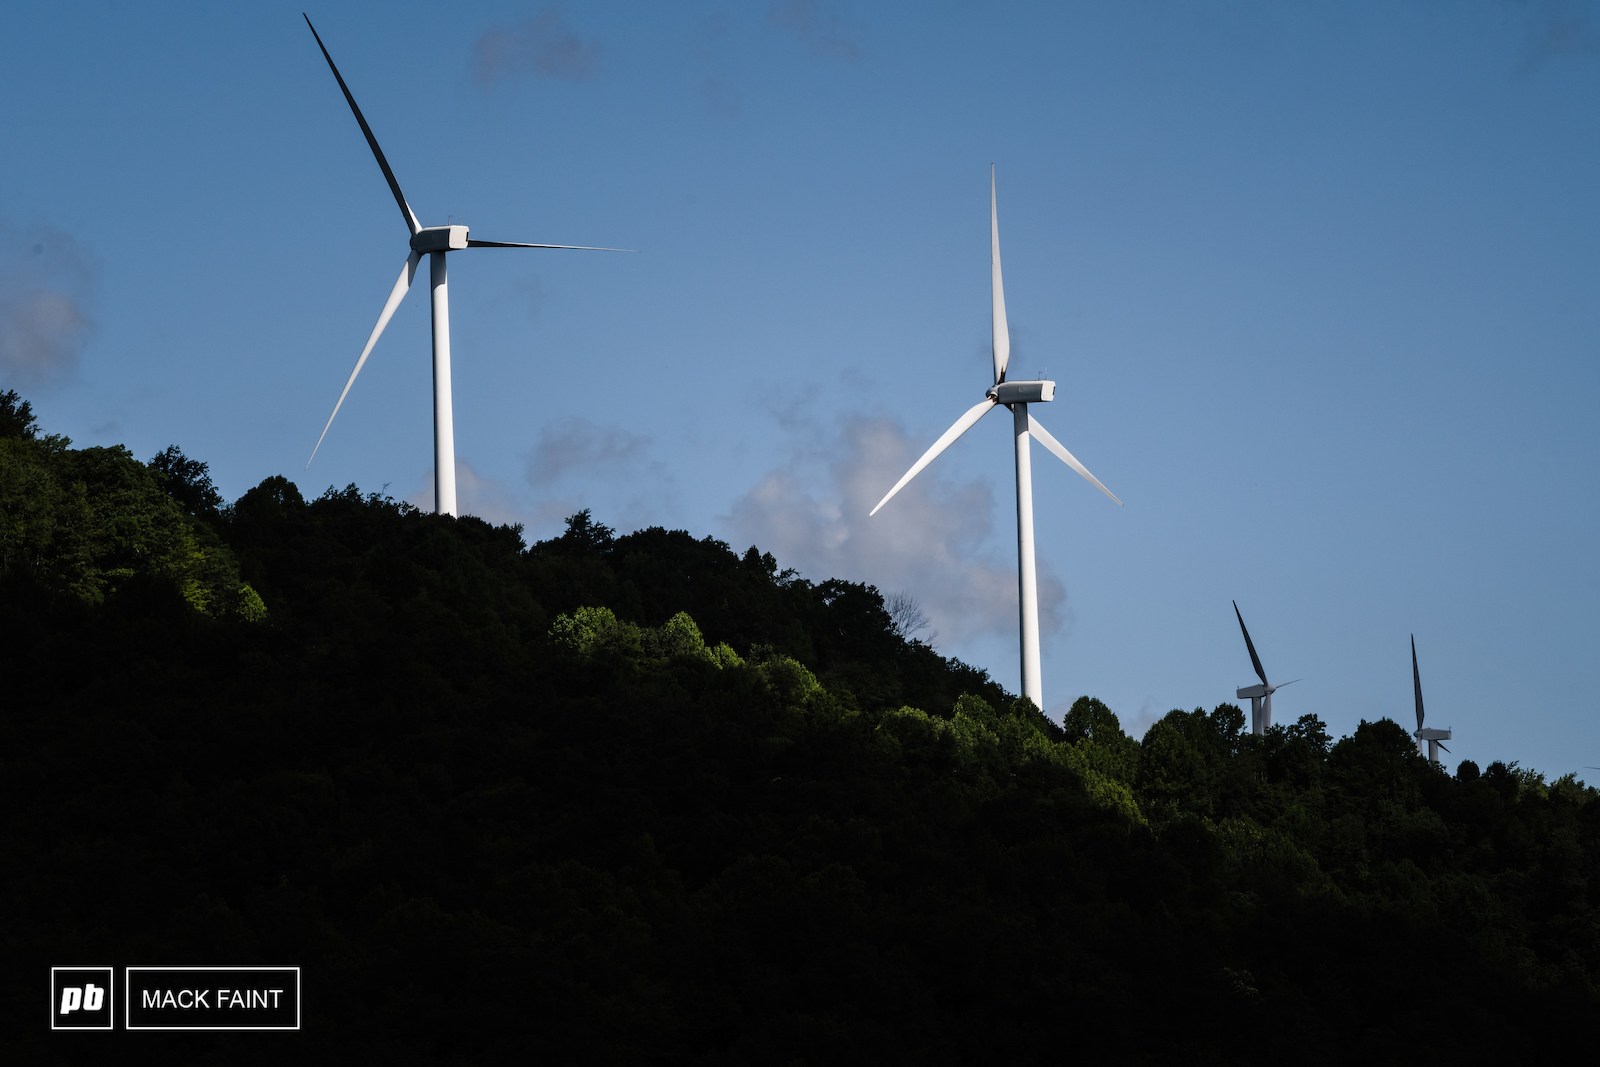 Not visible from the parking area but windrock his home to many wind turbines at the top.